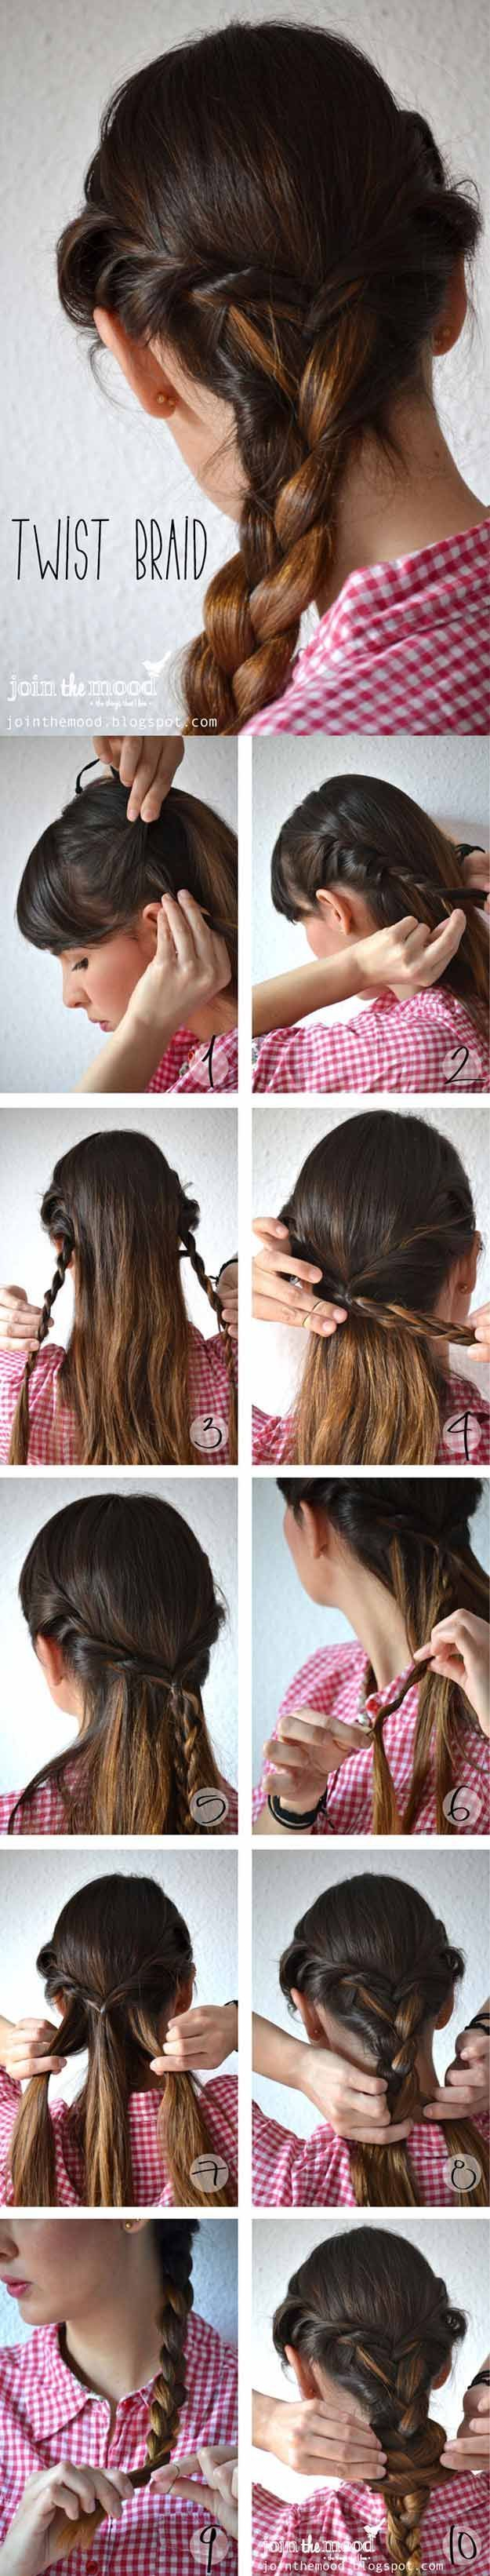 4824 best Easy hairstyles images on Pinterest